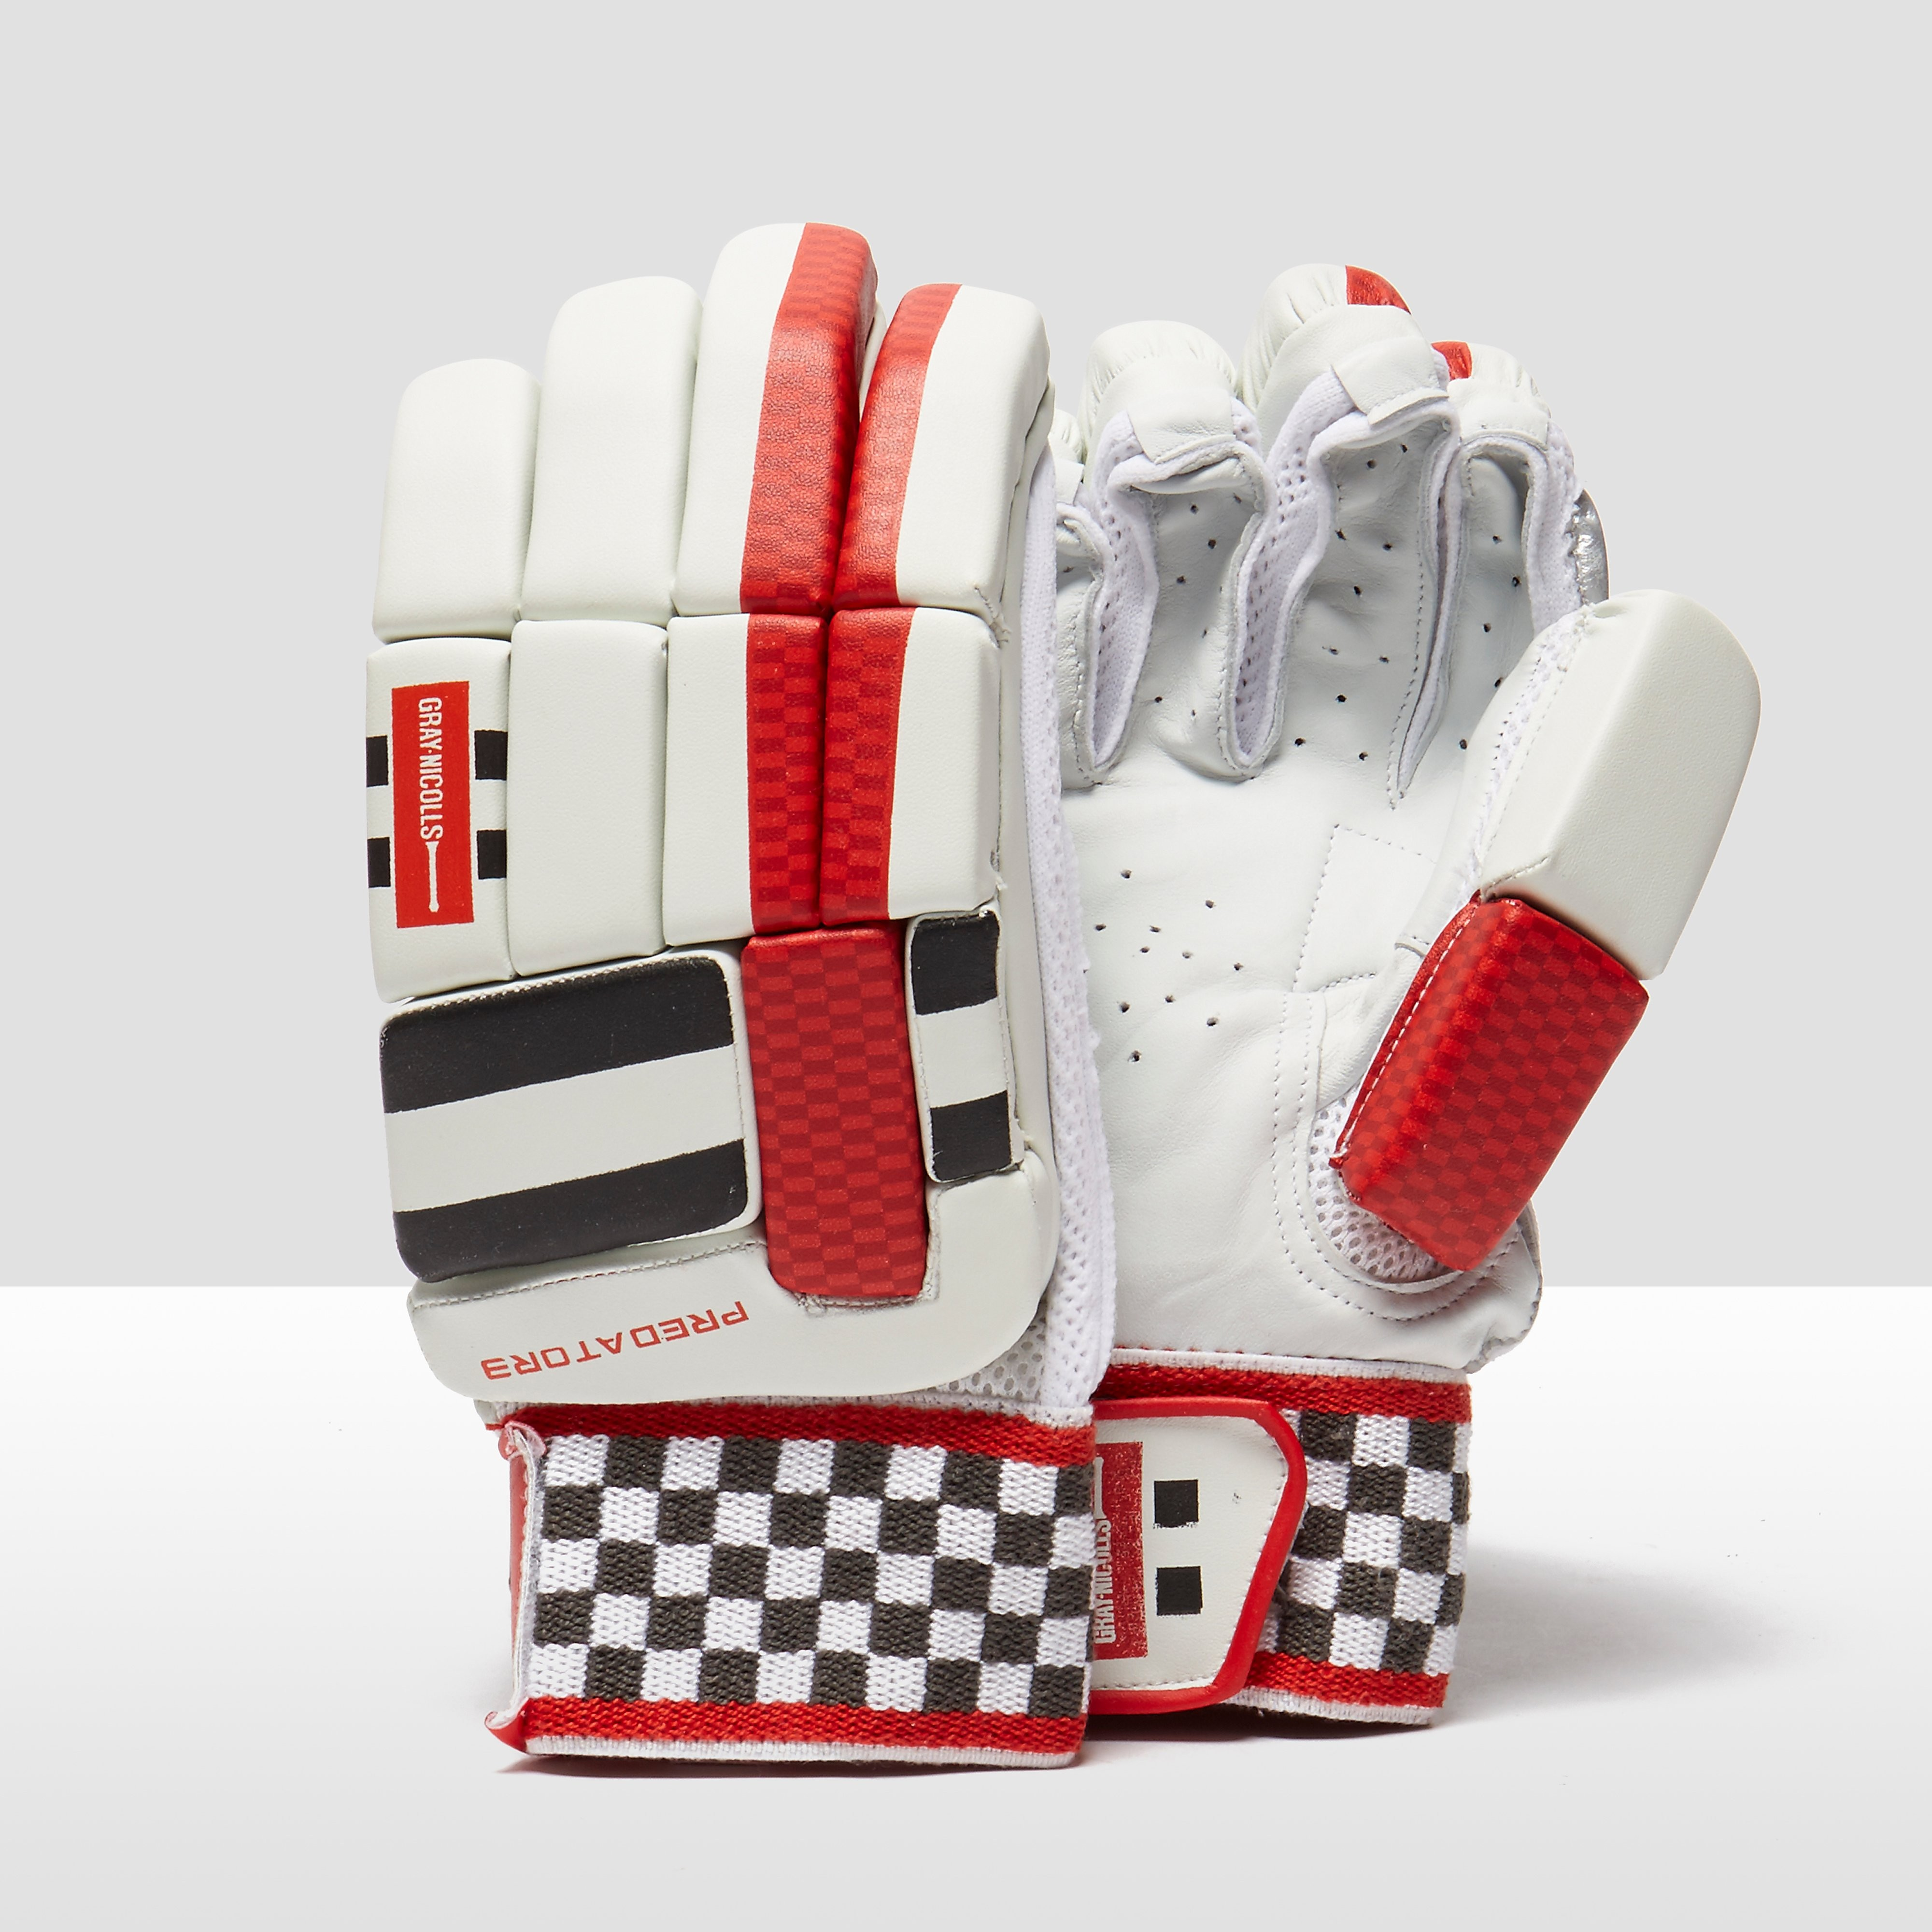 Gray Nicolls Predator 3 600 Cricket Batting Gloves